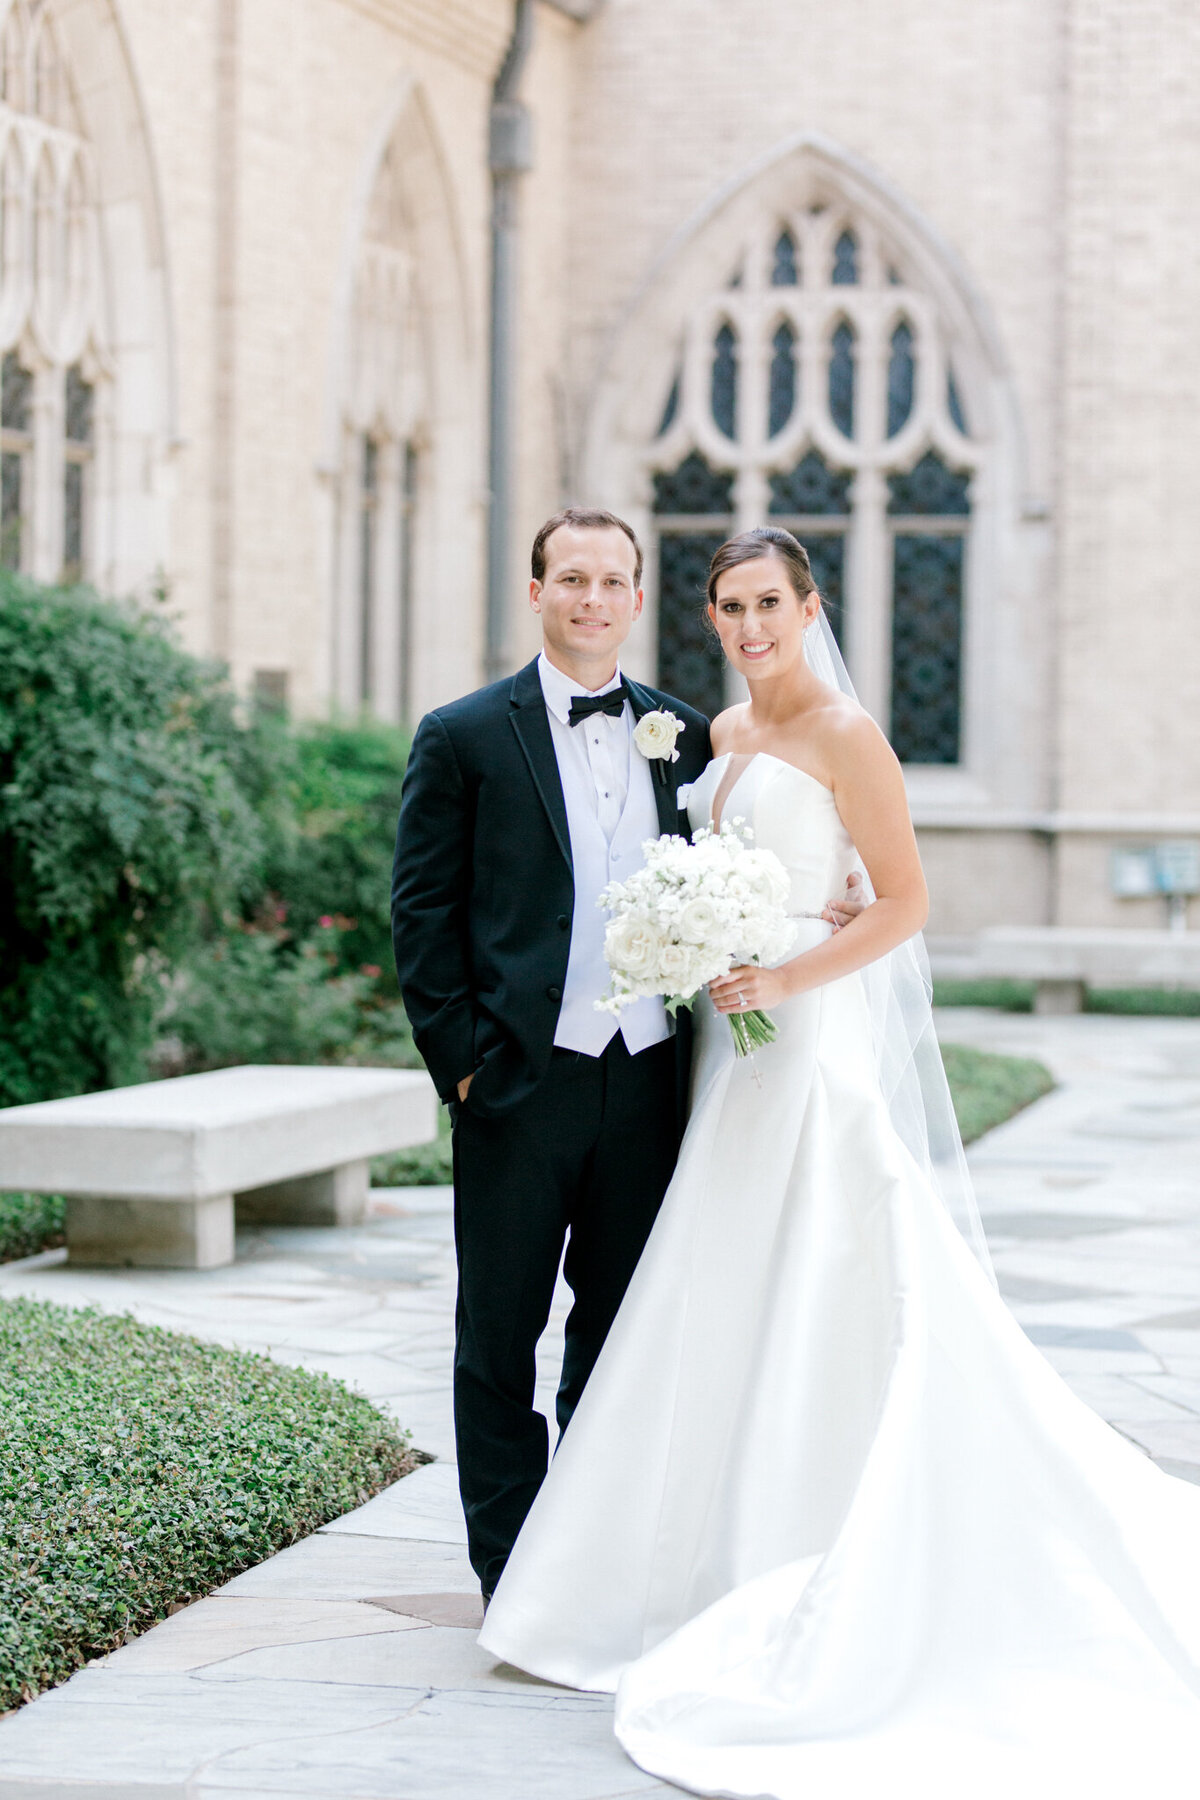 Wedding at the Crescent Court Hotel and Highland Park United Methodist Church in Dallas | Sami Kathryn Photography | DFW Wedding Photographer-127